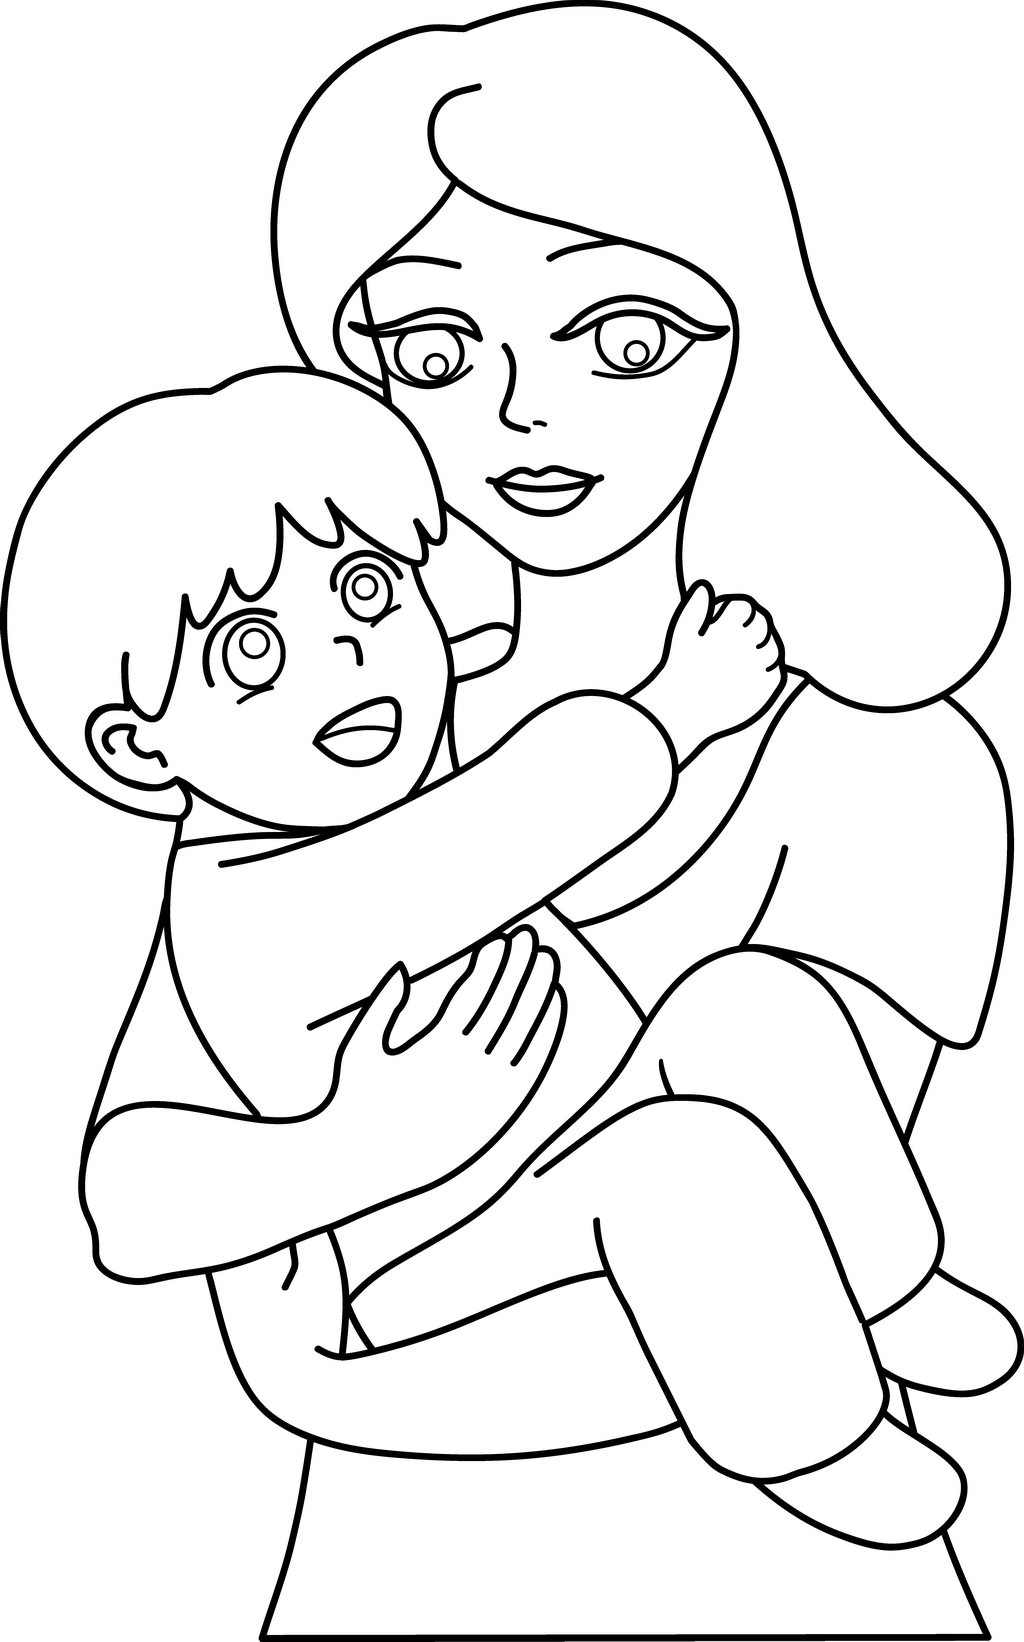 Mother Black And White Clipart | Clipart Panda - Free ...